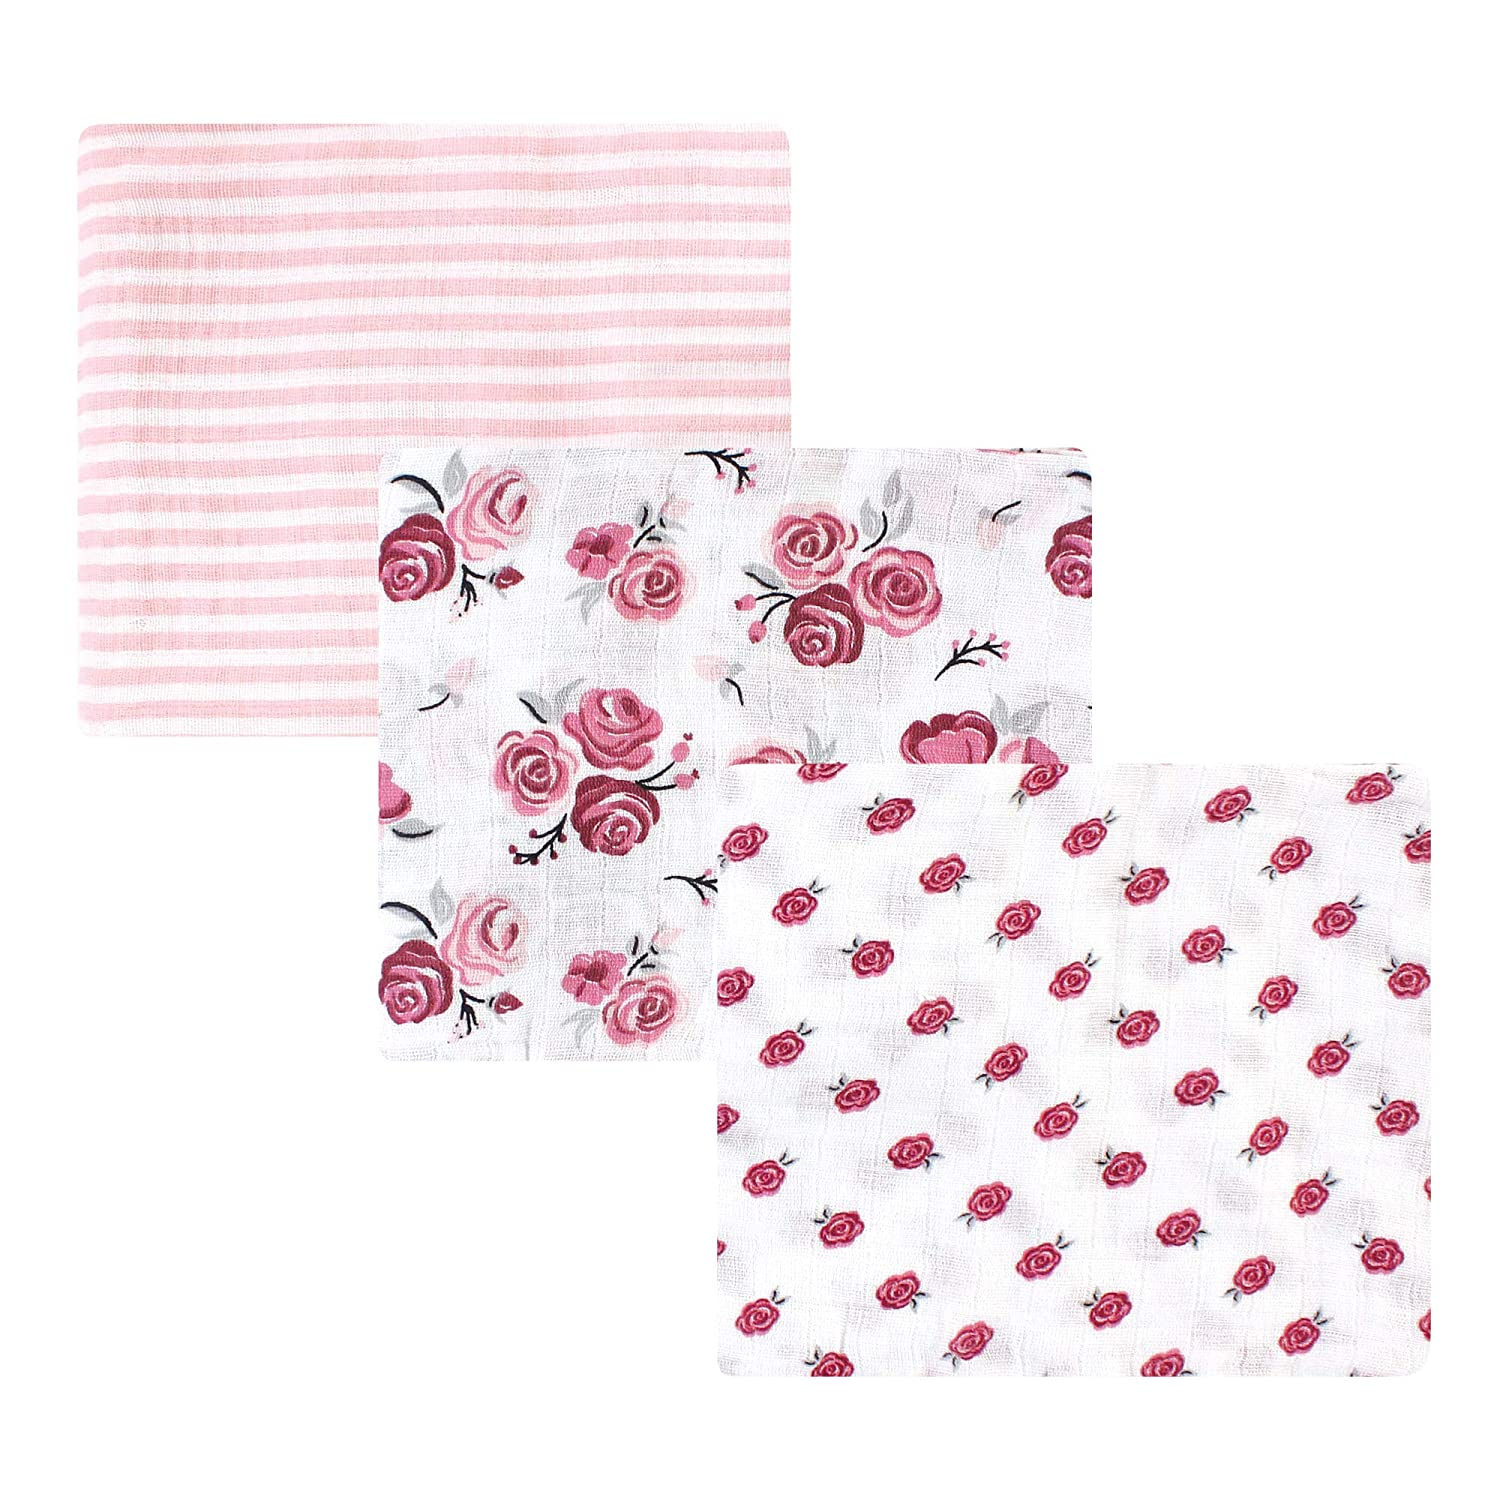 Hudson Baby Unisex Baby Cotton Muslin Swaddle Blankets, Rose 3-Pack, One Size